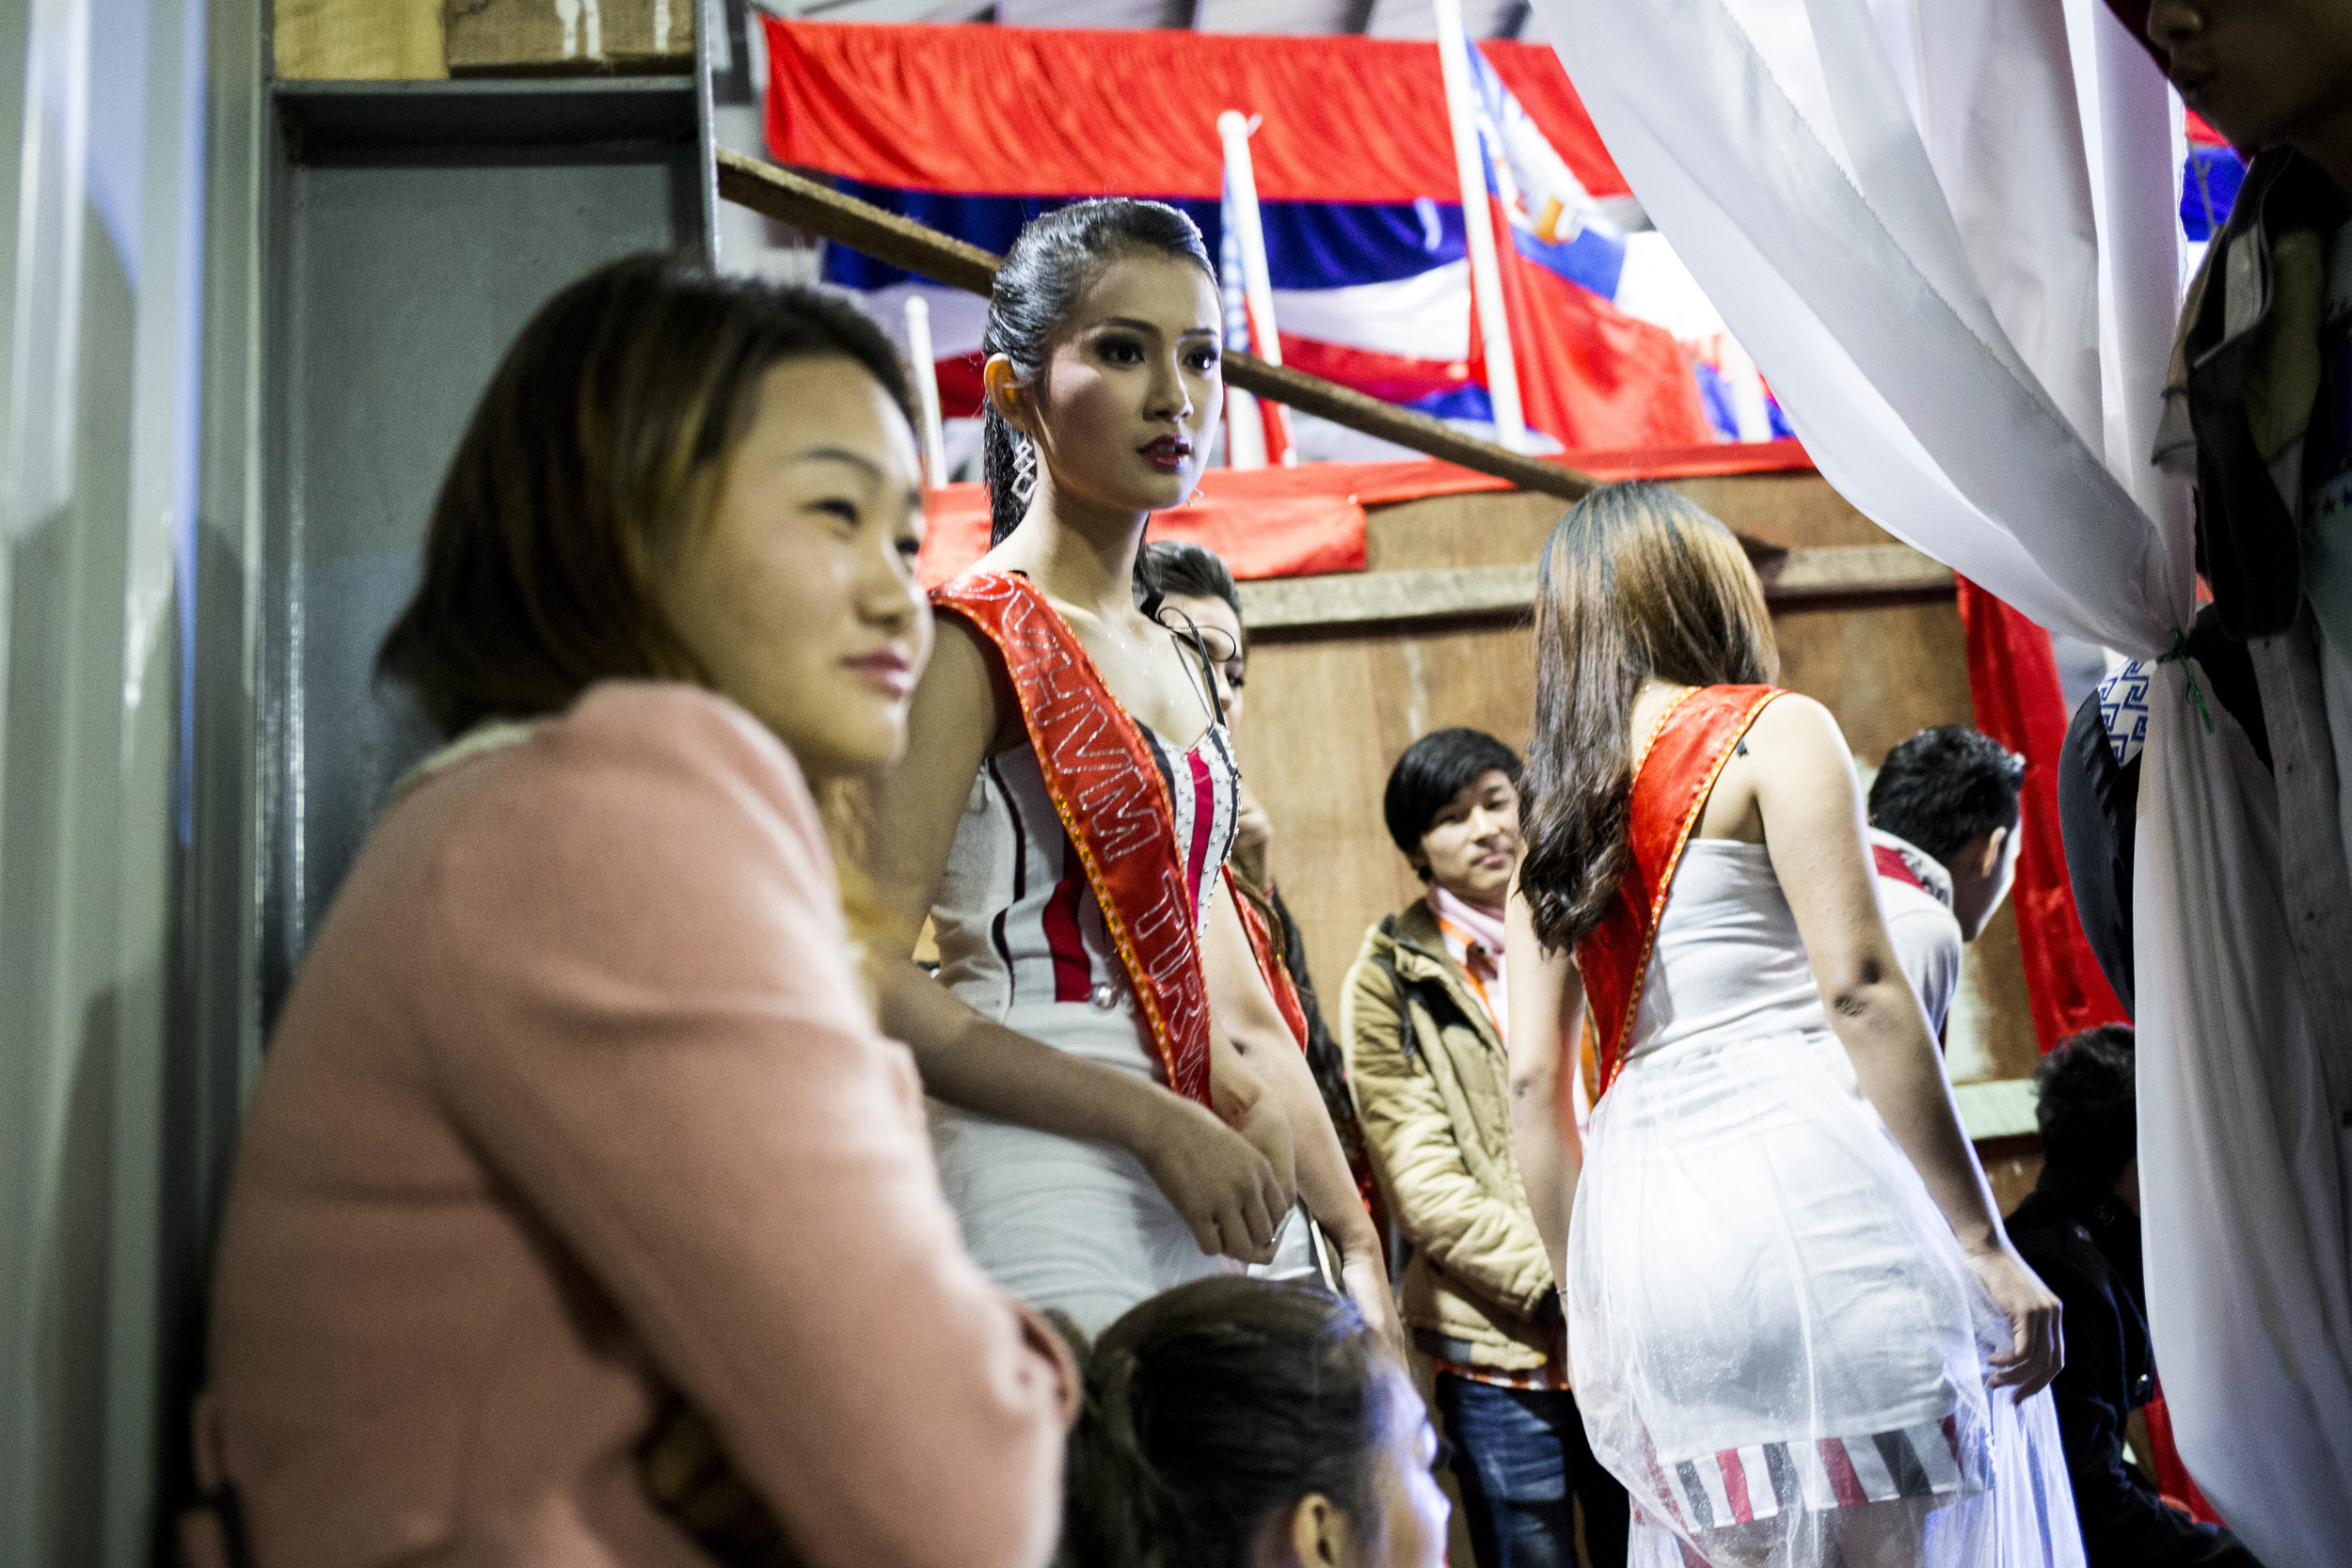 Miss. Rawang beauty pageant competition. Photo by Ann Wang